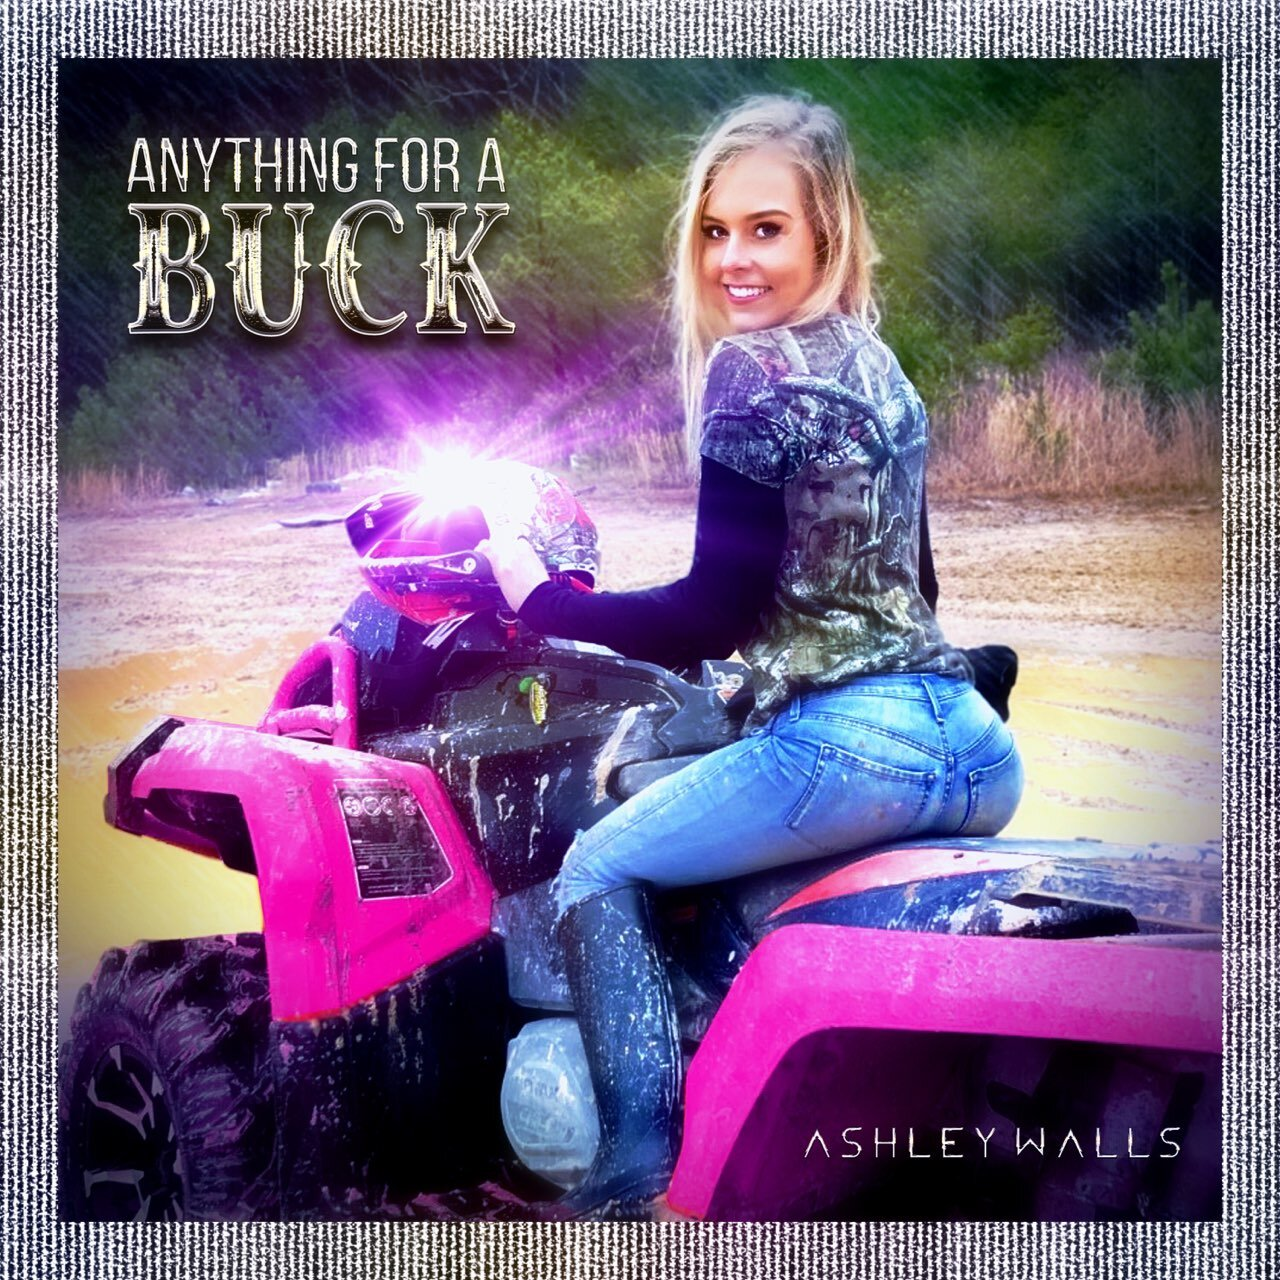 Anything for a Buck - It's finally here!! Anything for a Buck is out just in time for buck hunting season. Listen to this one for an upbeat song when you're on your way hunting, going to a party, or wanting to have a great day.